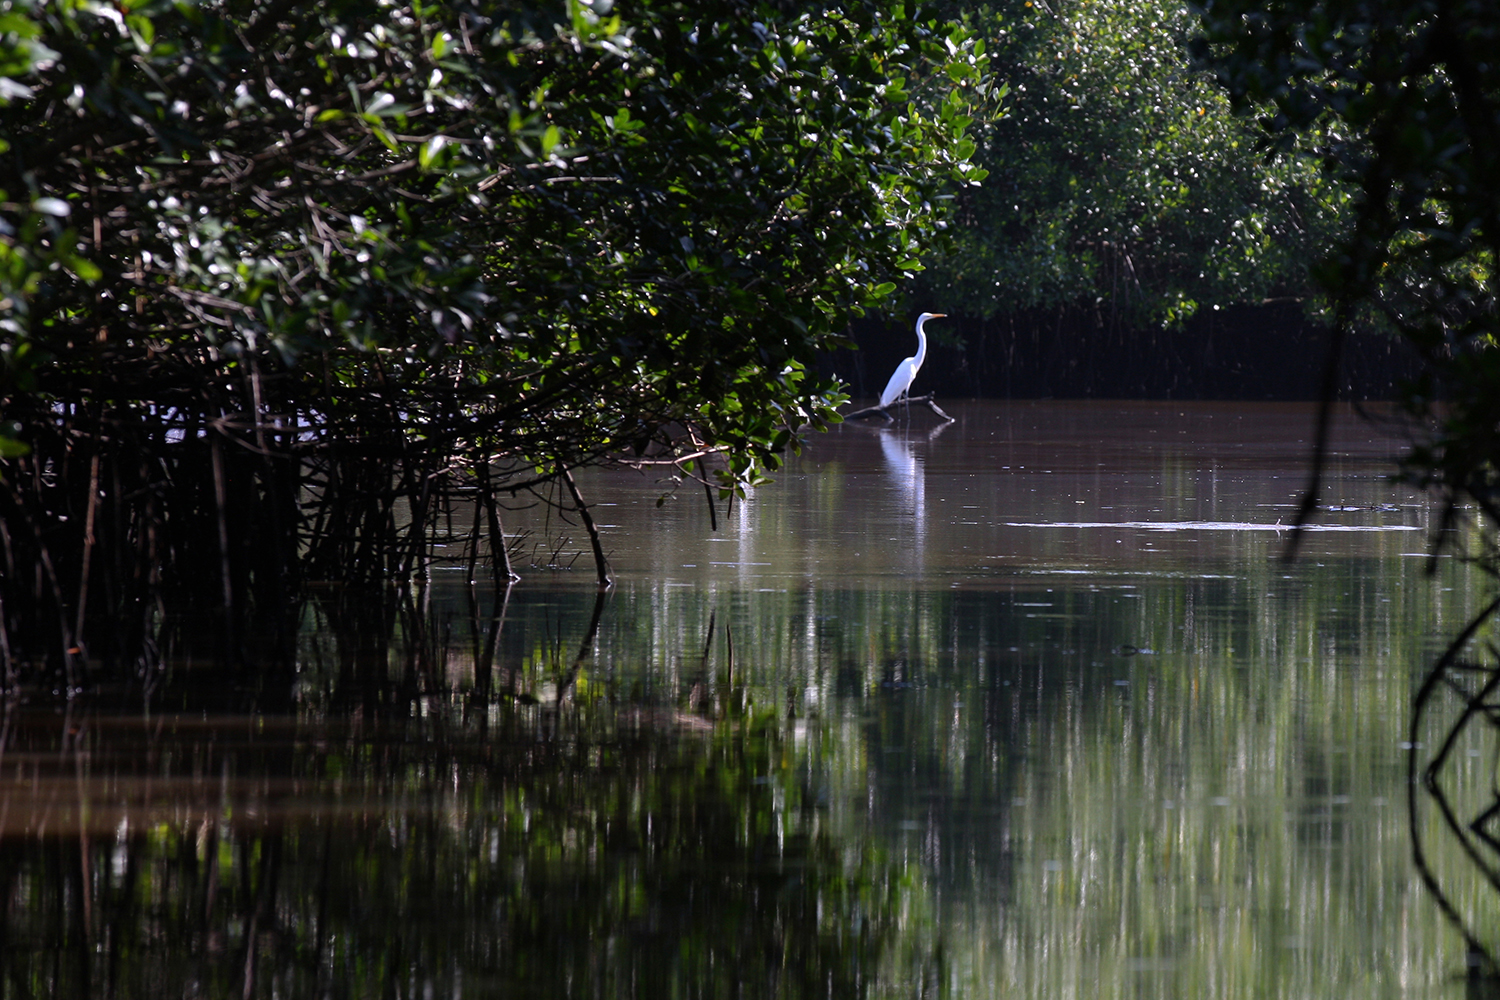 The Egret and Mangrove